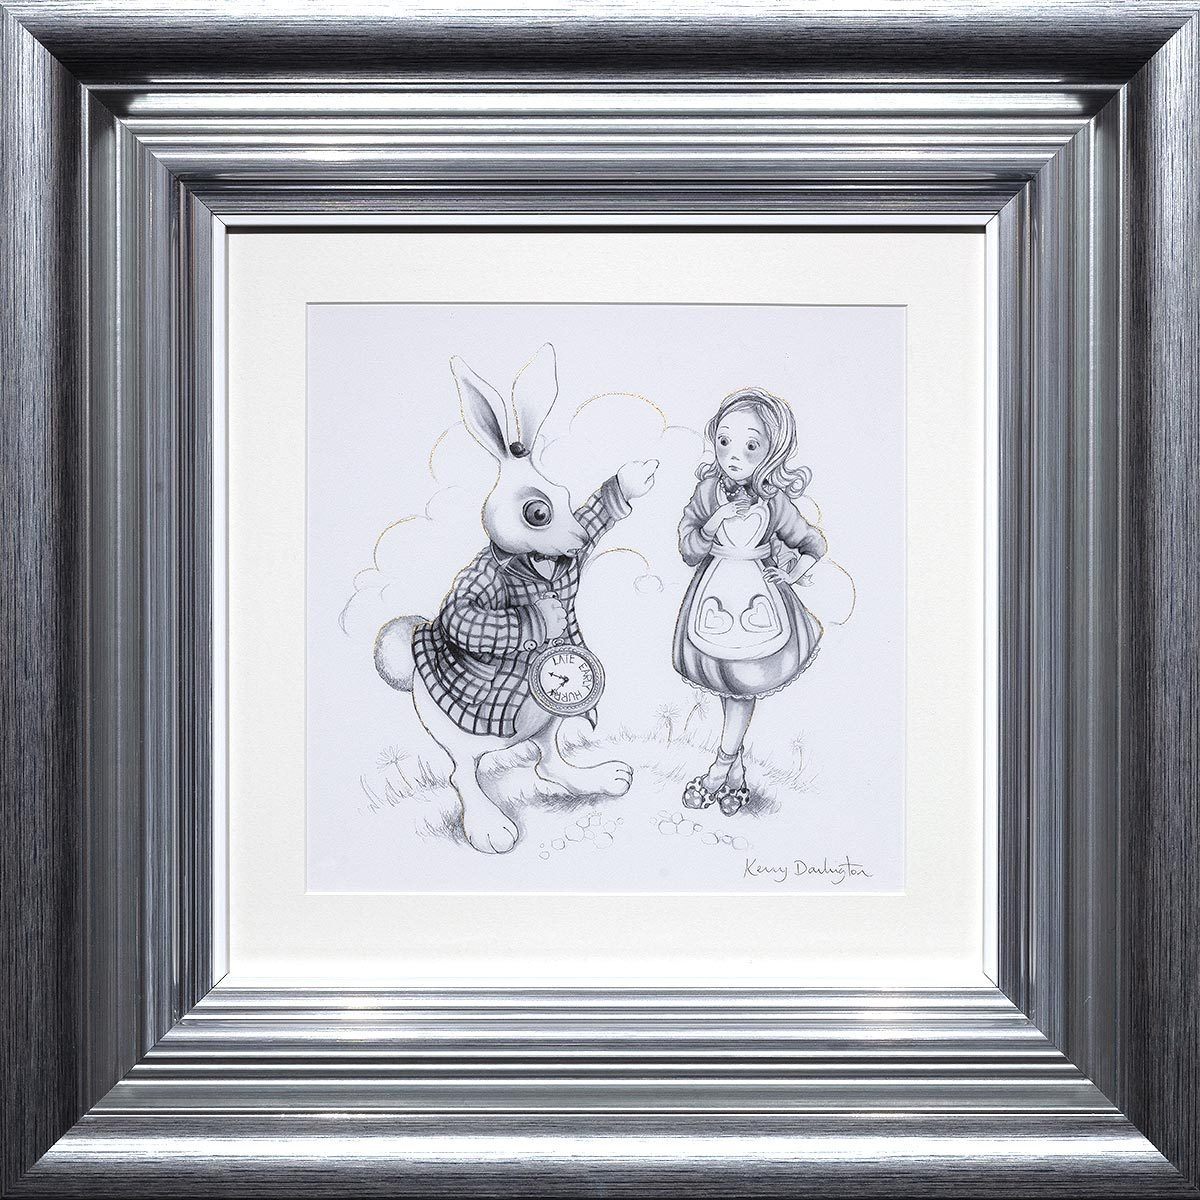 Oh My Fur and Whiskers & We're All Mad Here - Matching Sketch Edition Set Kerry Darlington